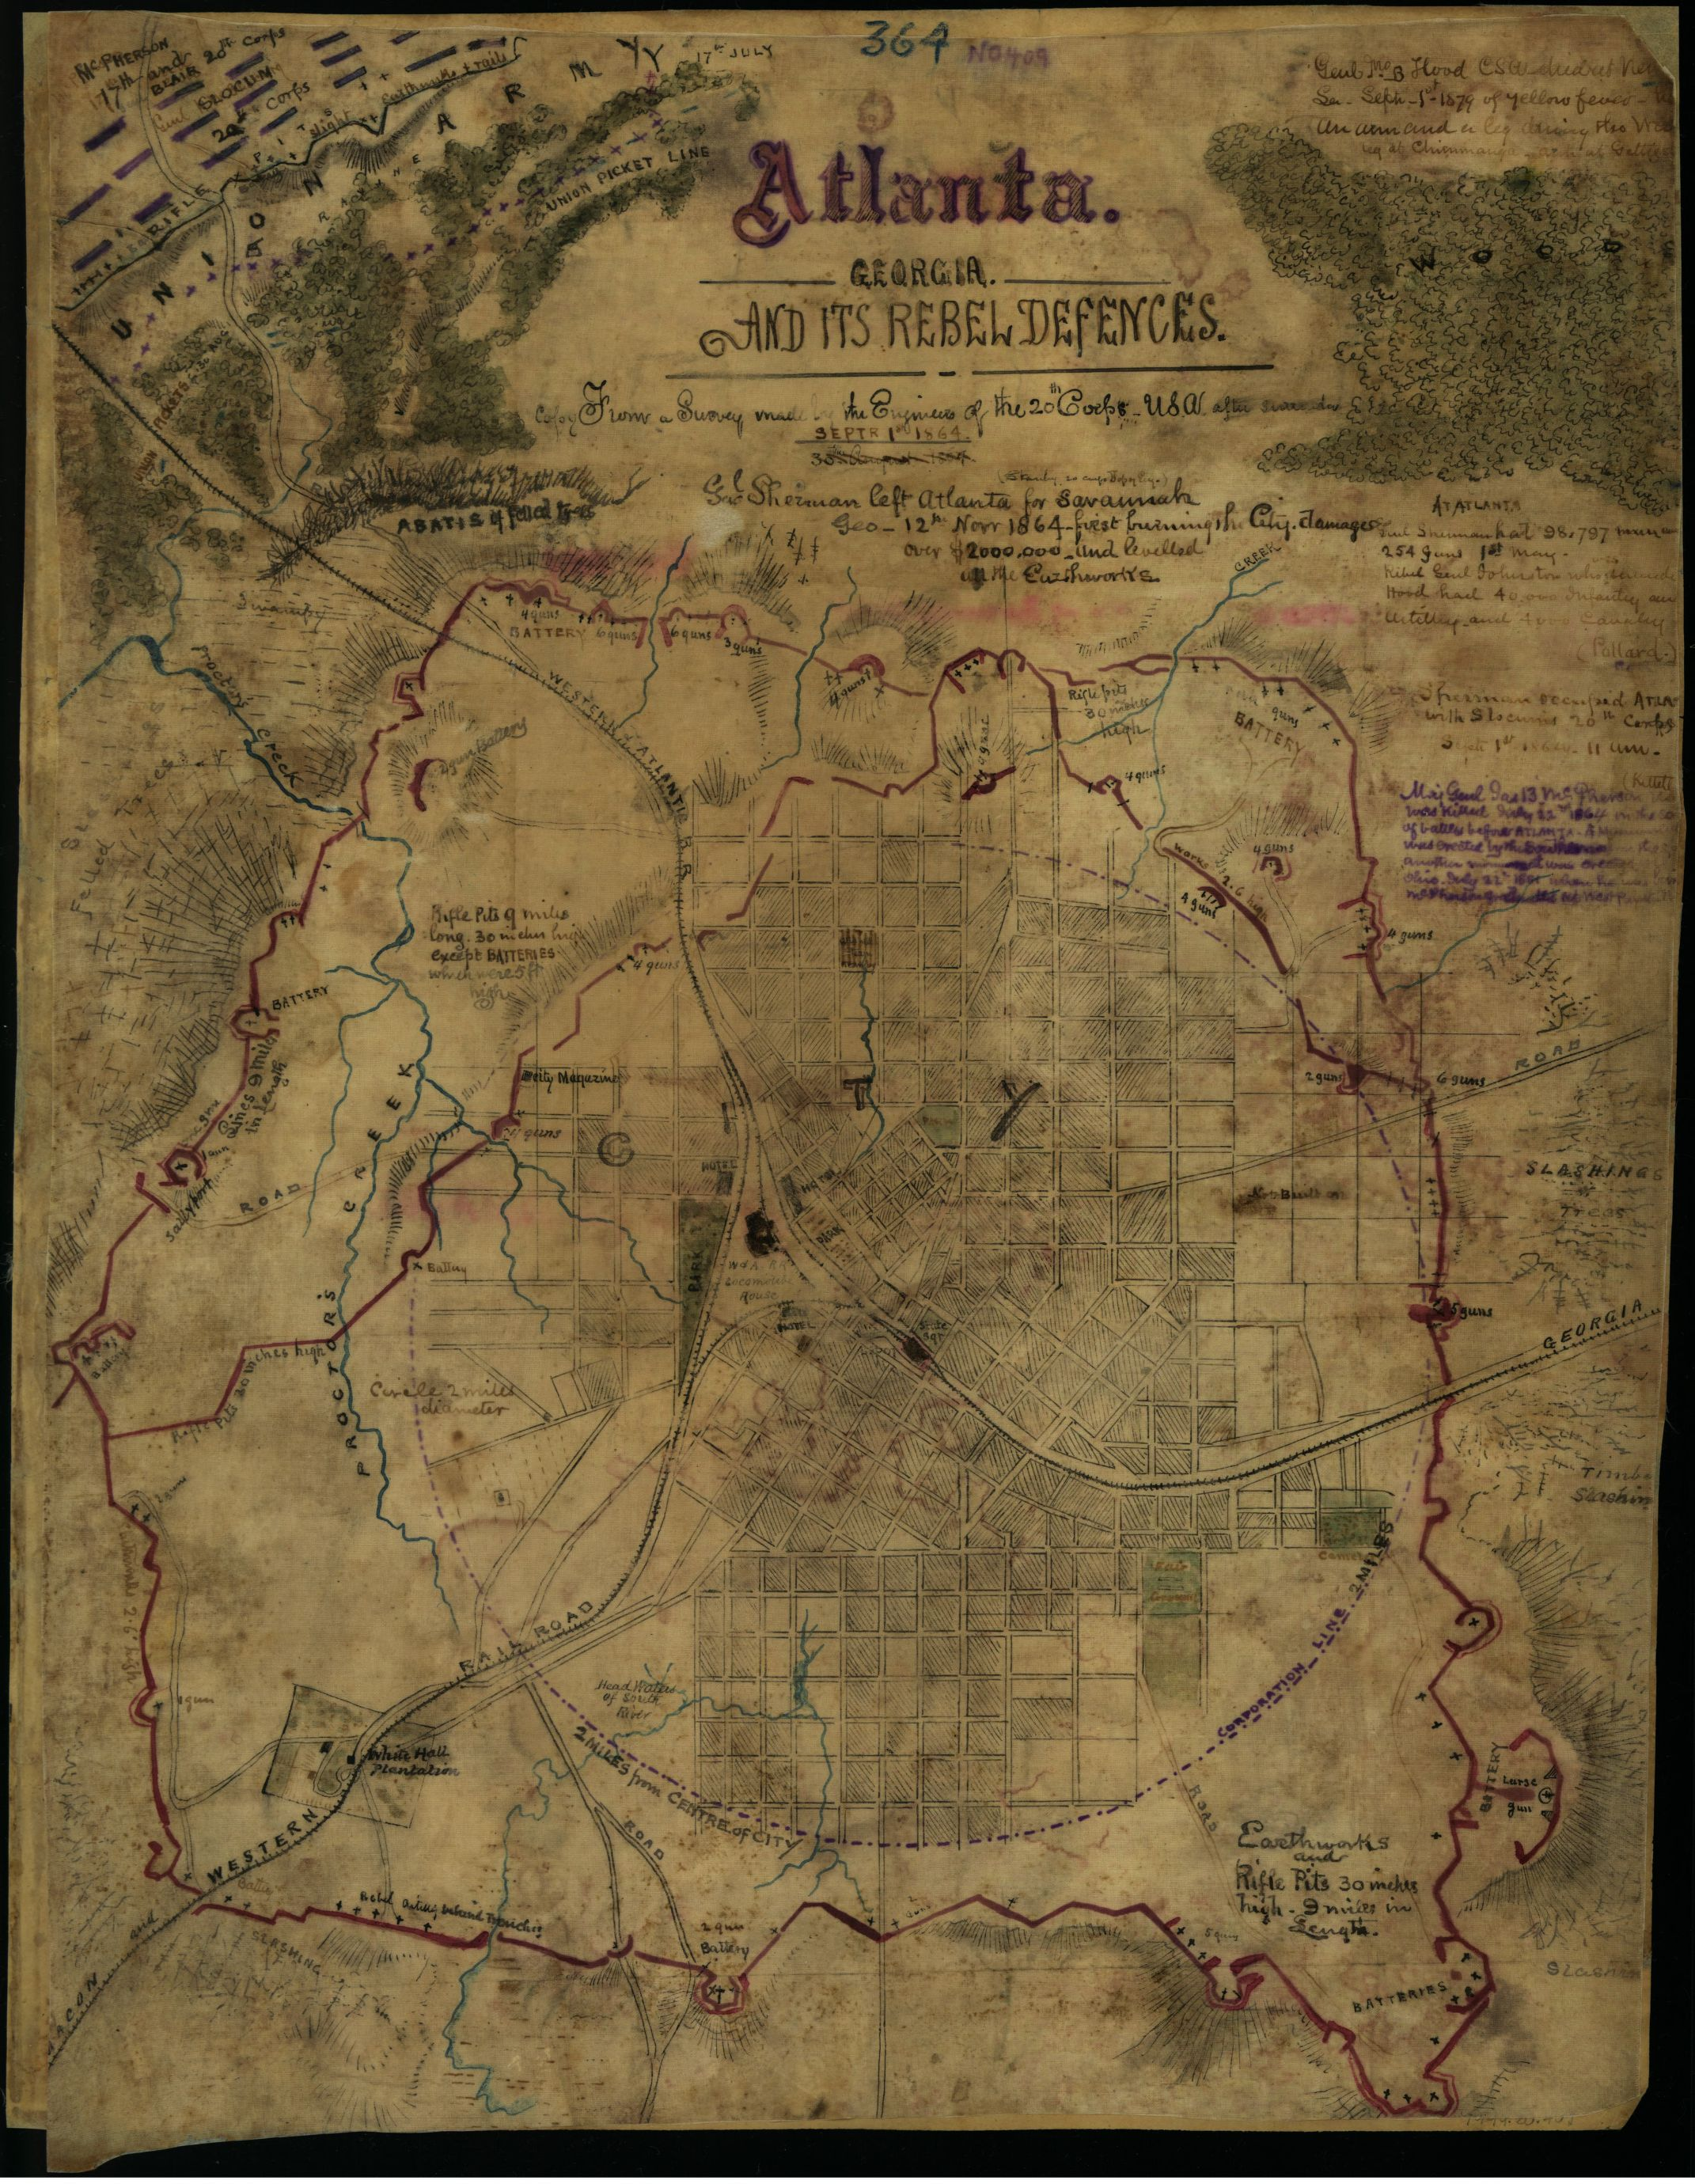 Map Of Georgia 1865.Fort X History Atlanta